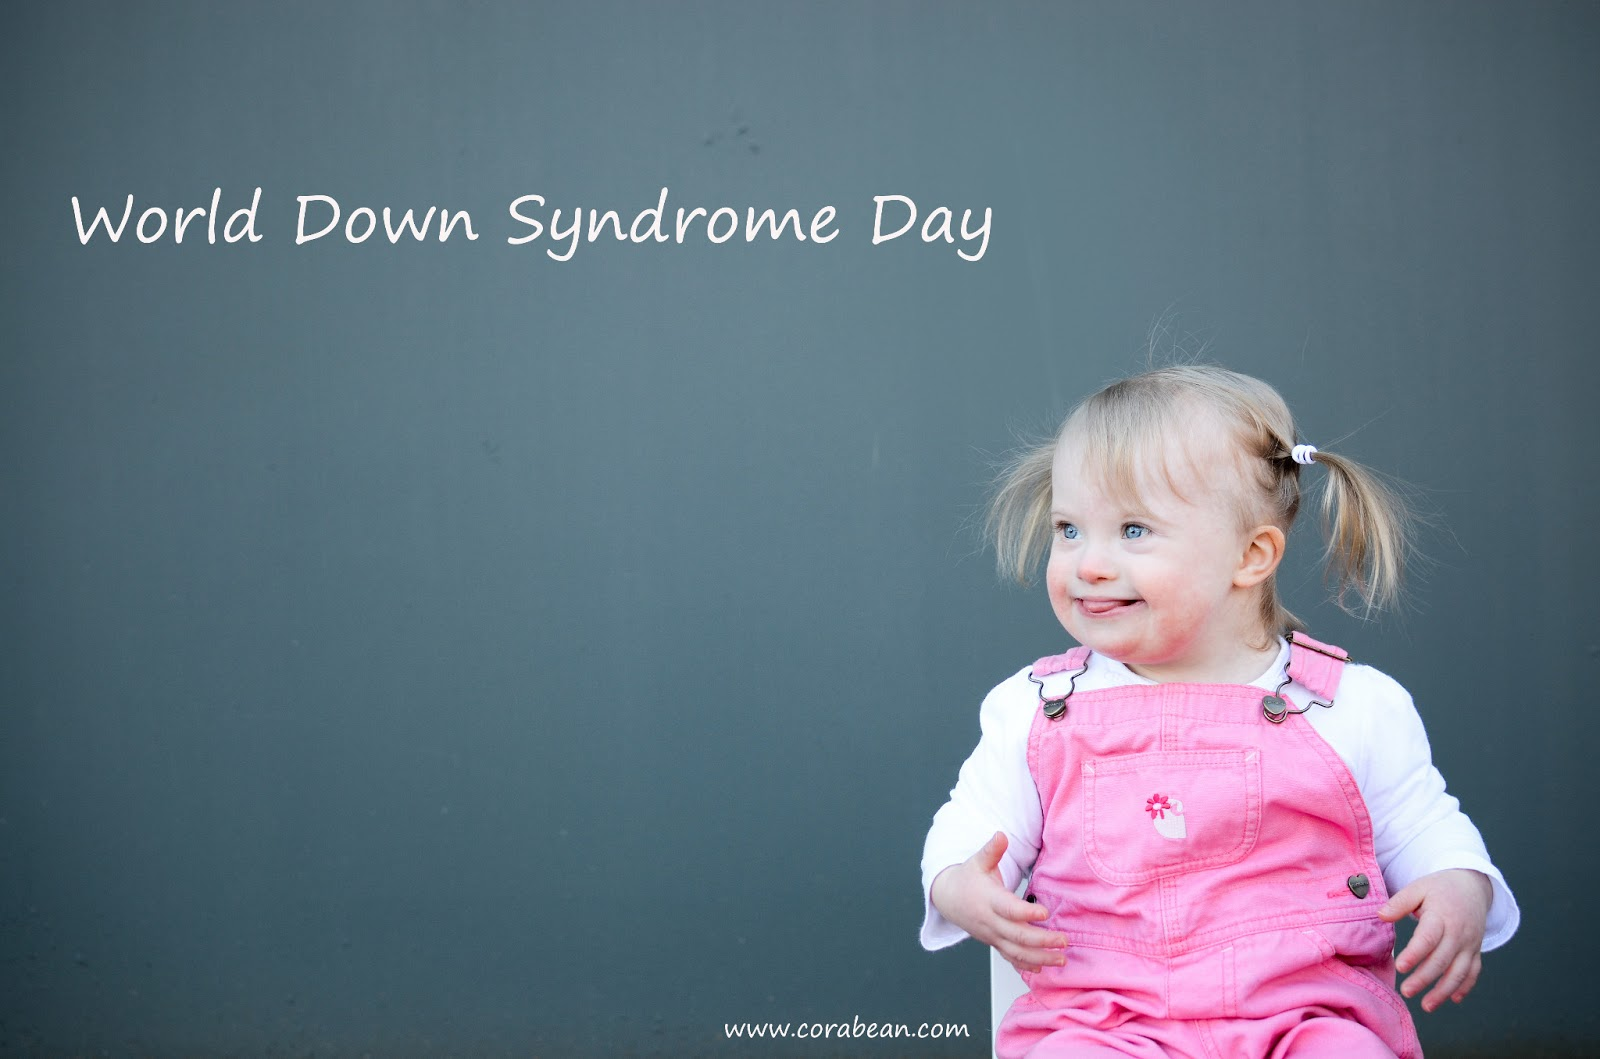 World Down Syndrome Day 2014 World Down Syndrome Day